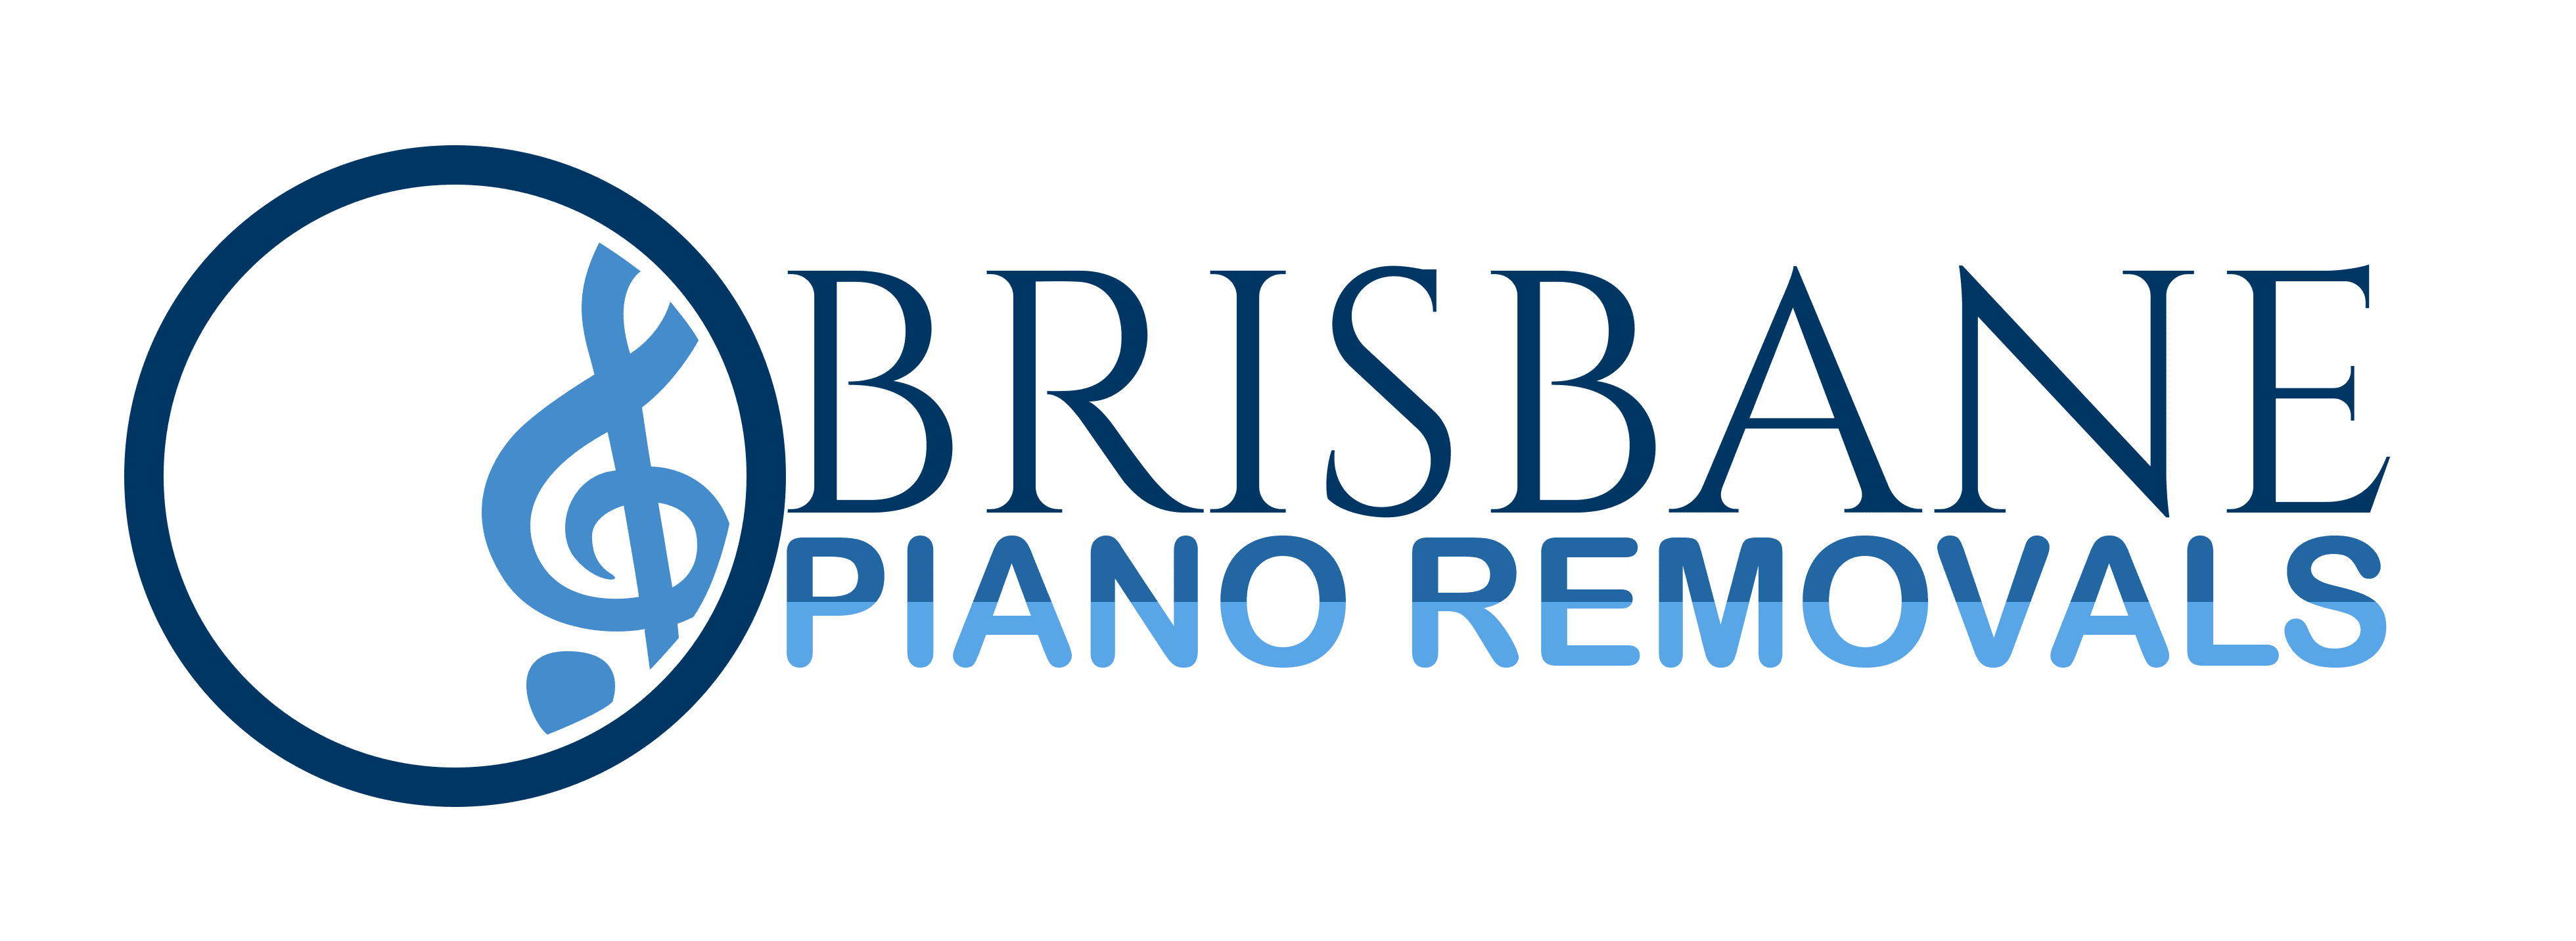 Brisbane Piano Removals